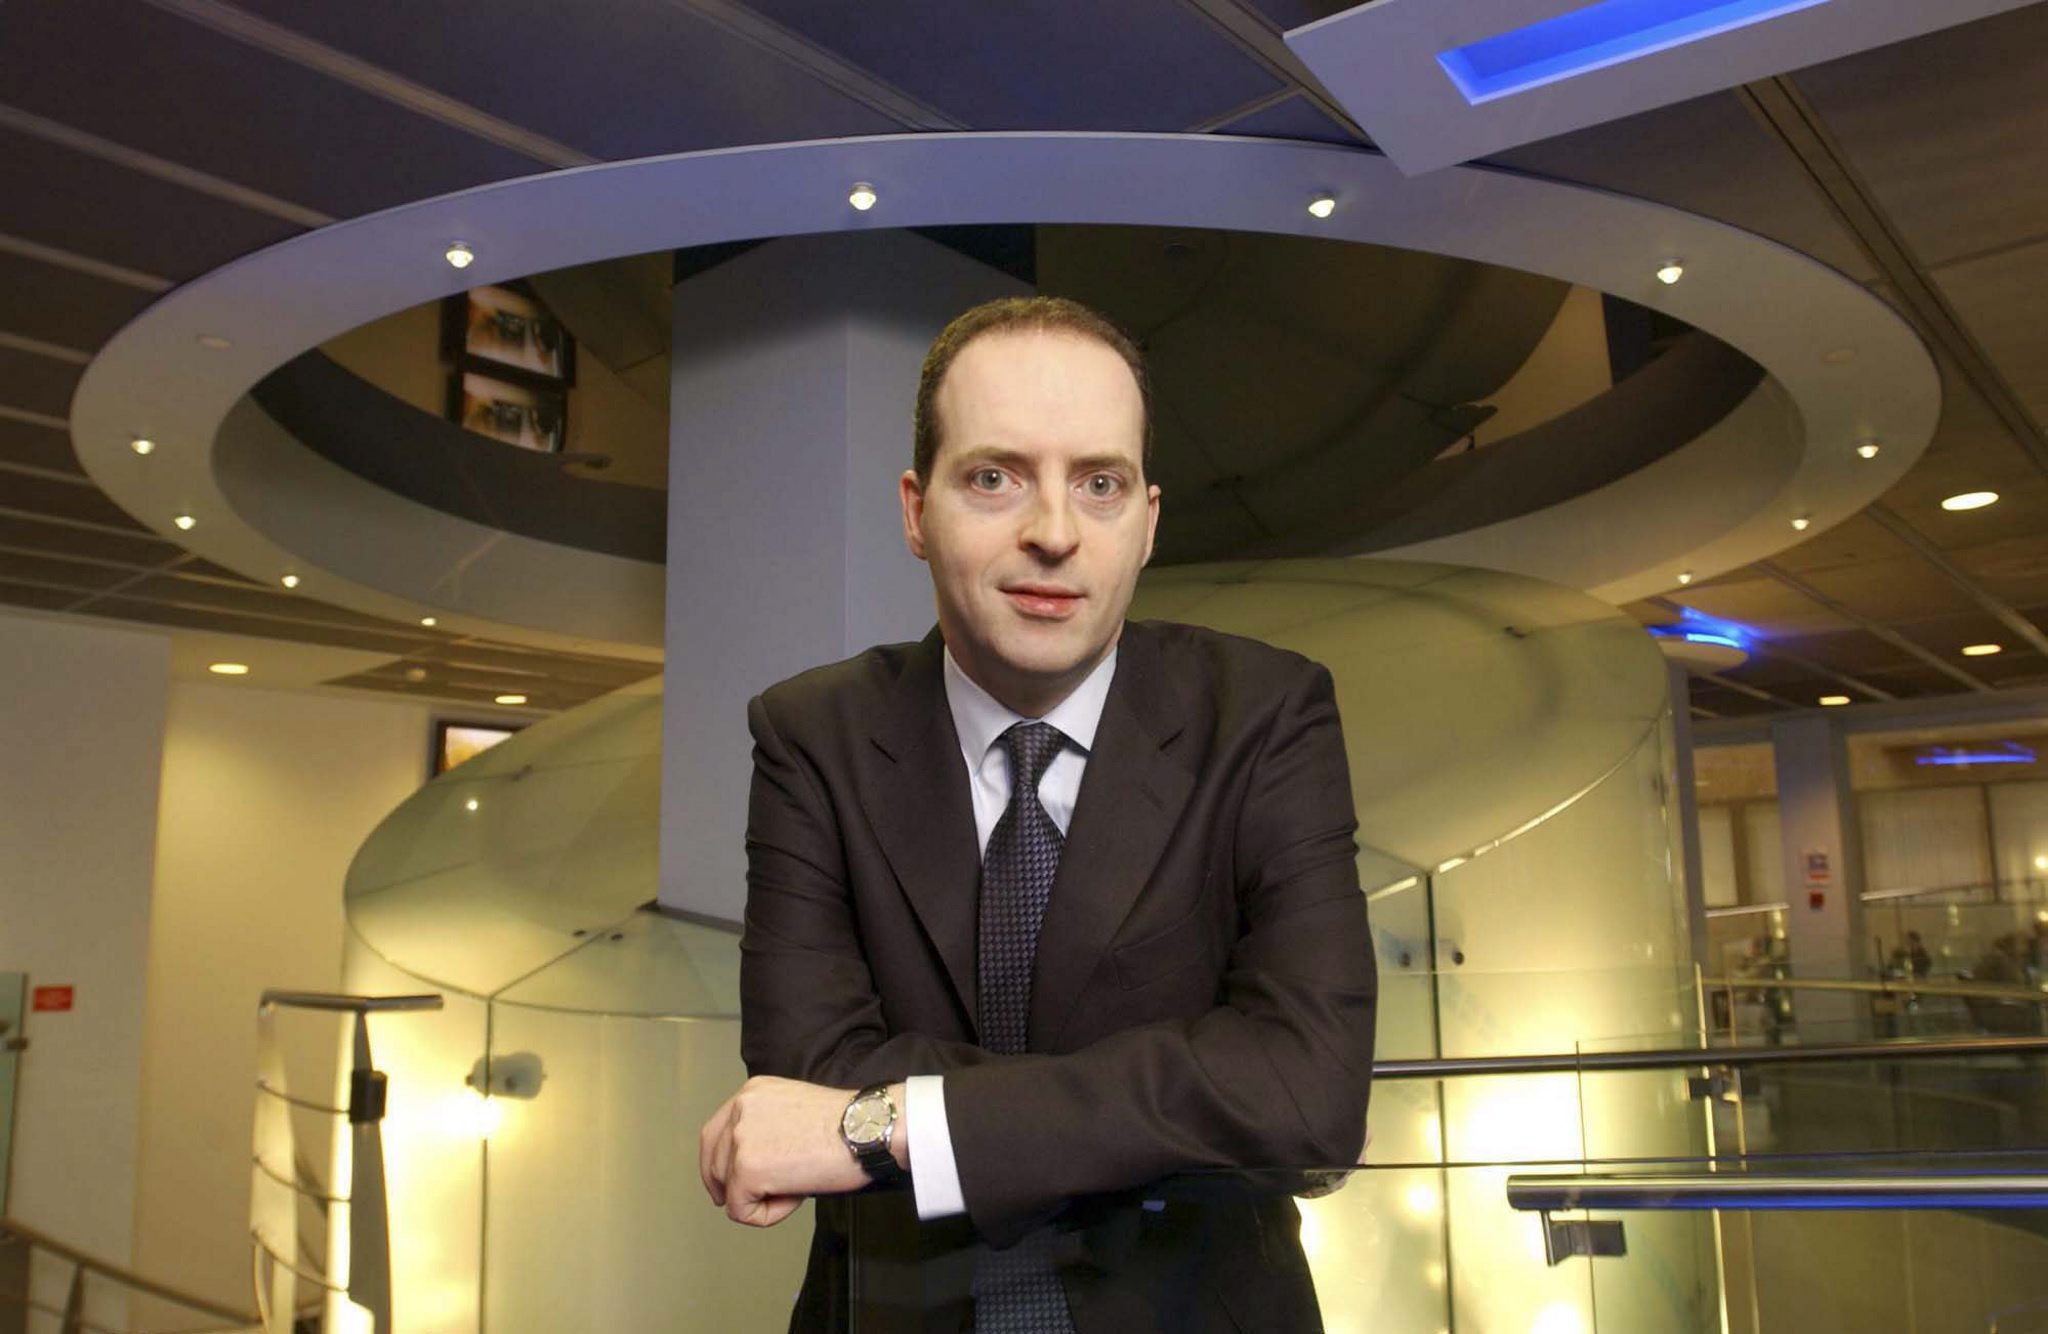 Former Celtic director and erstwhile BT chief Ian Livingston joins National Grid